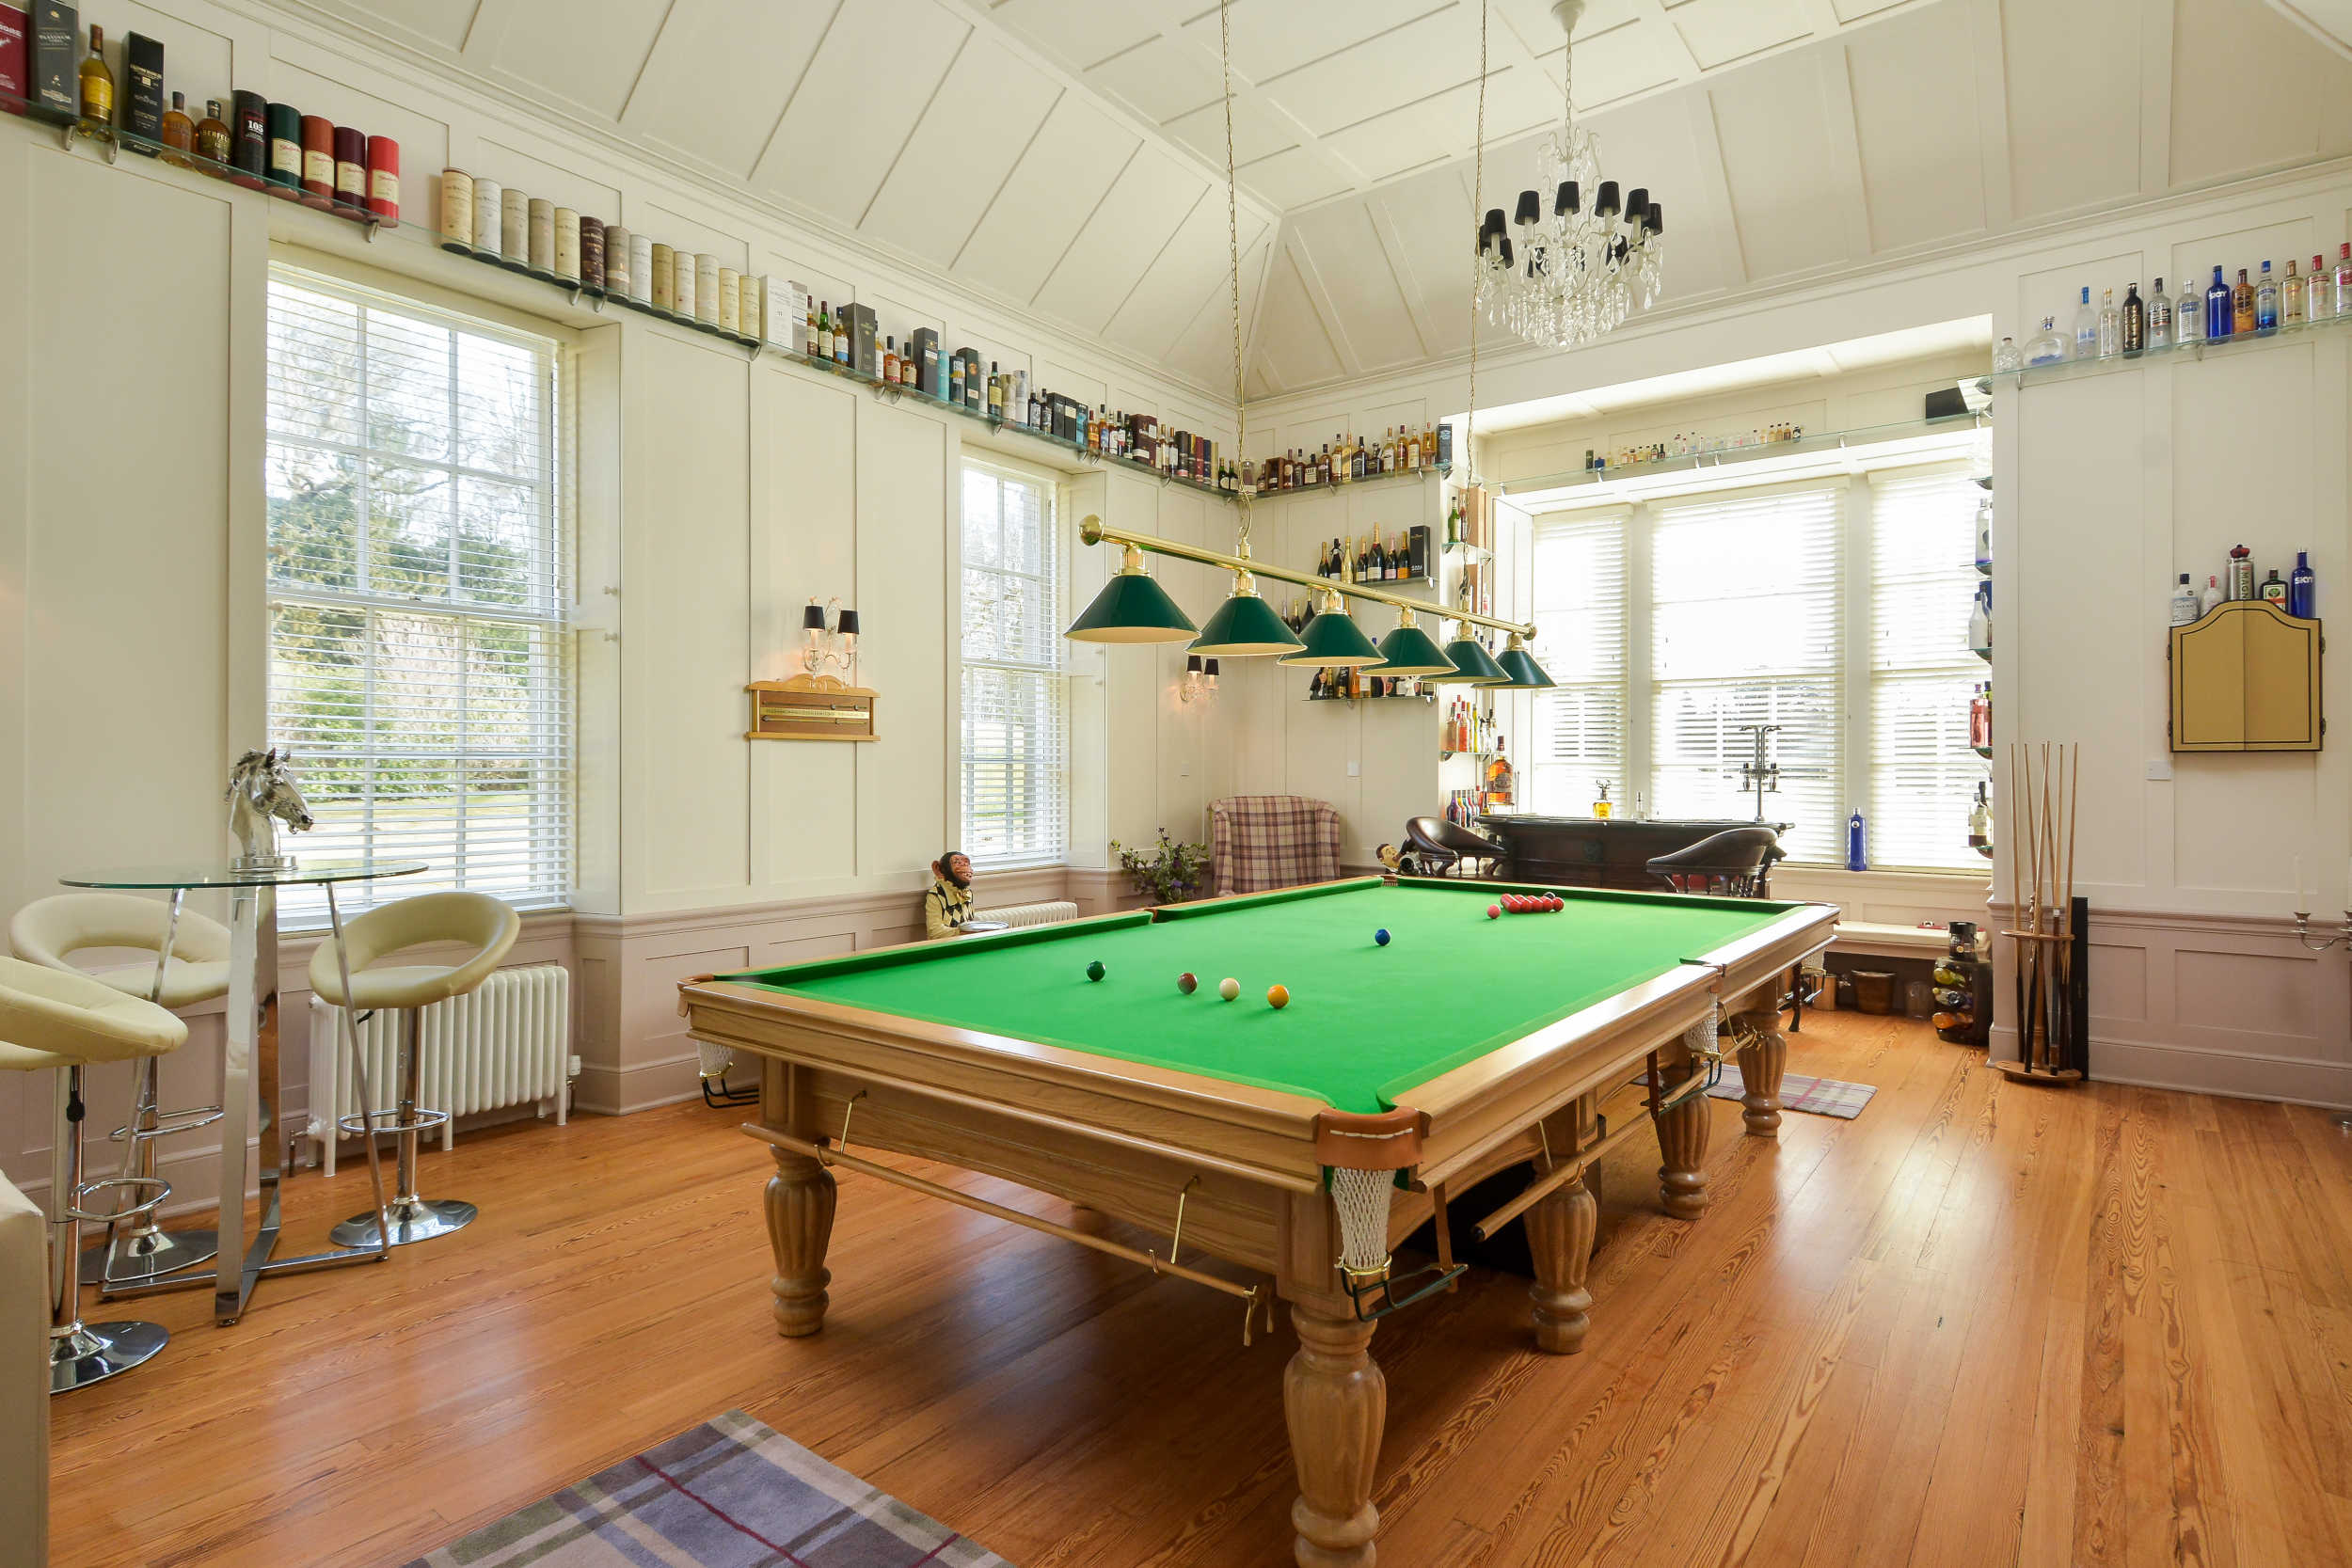 Straloch house interior, pictured a pool table inside the elegant dining room